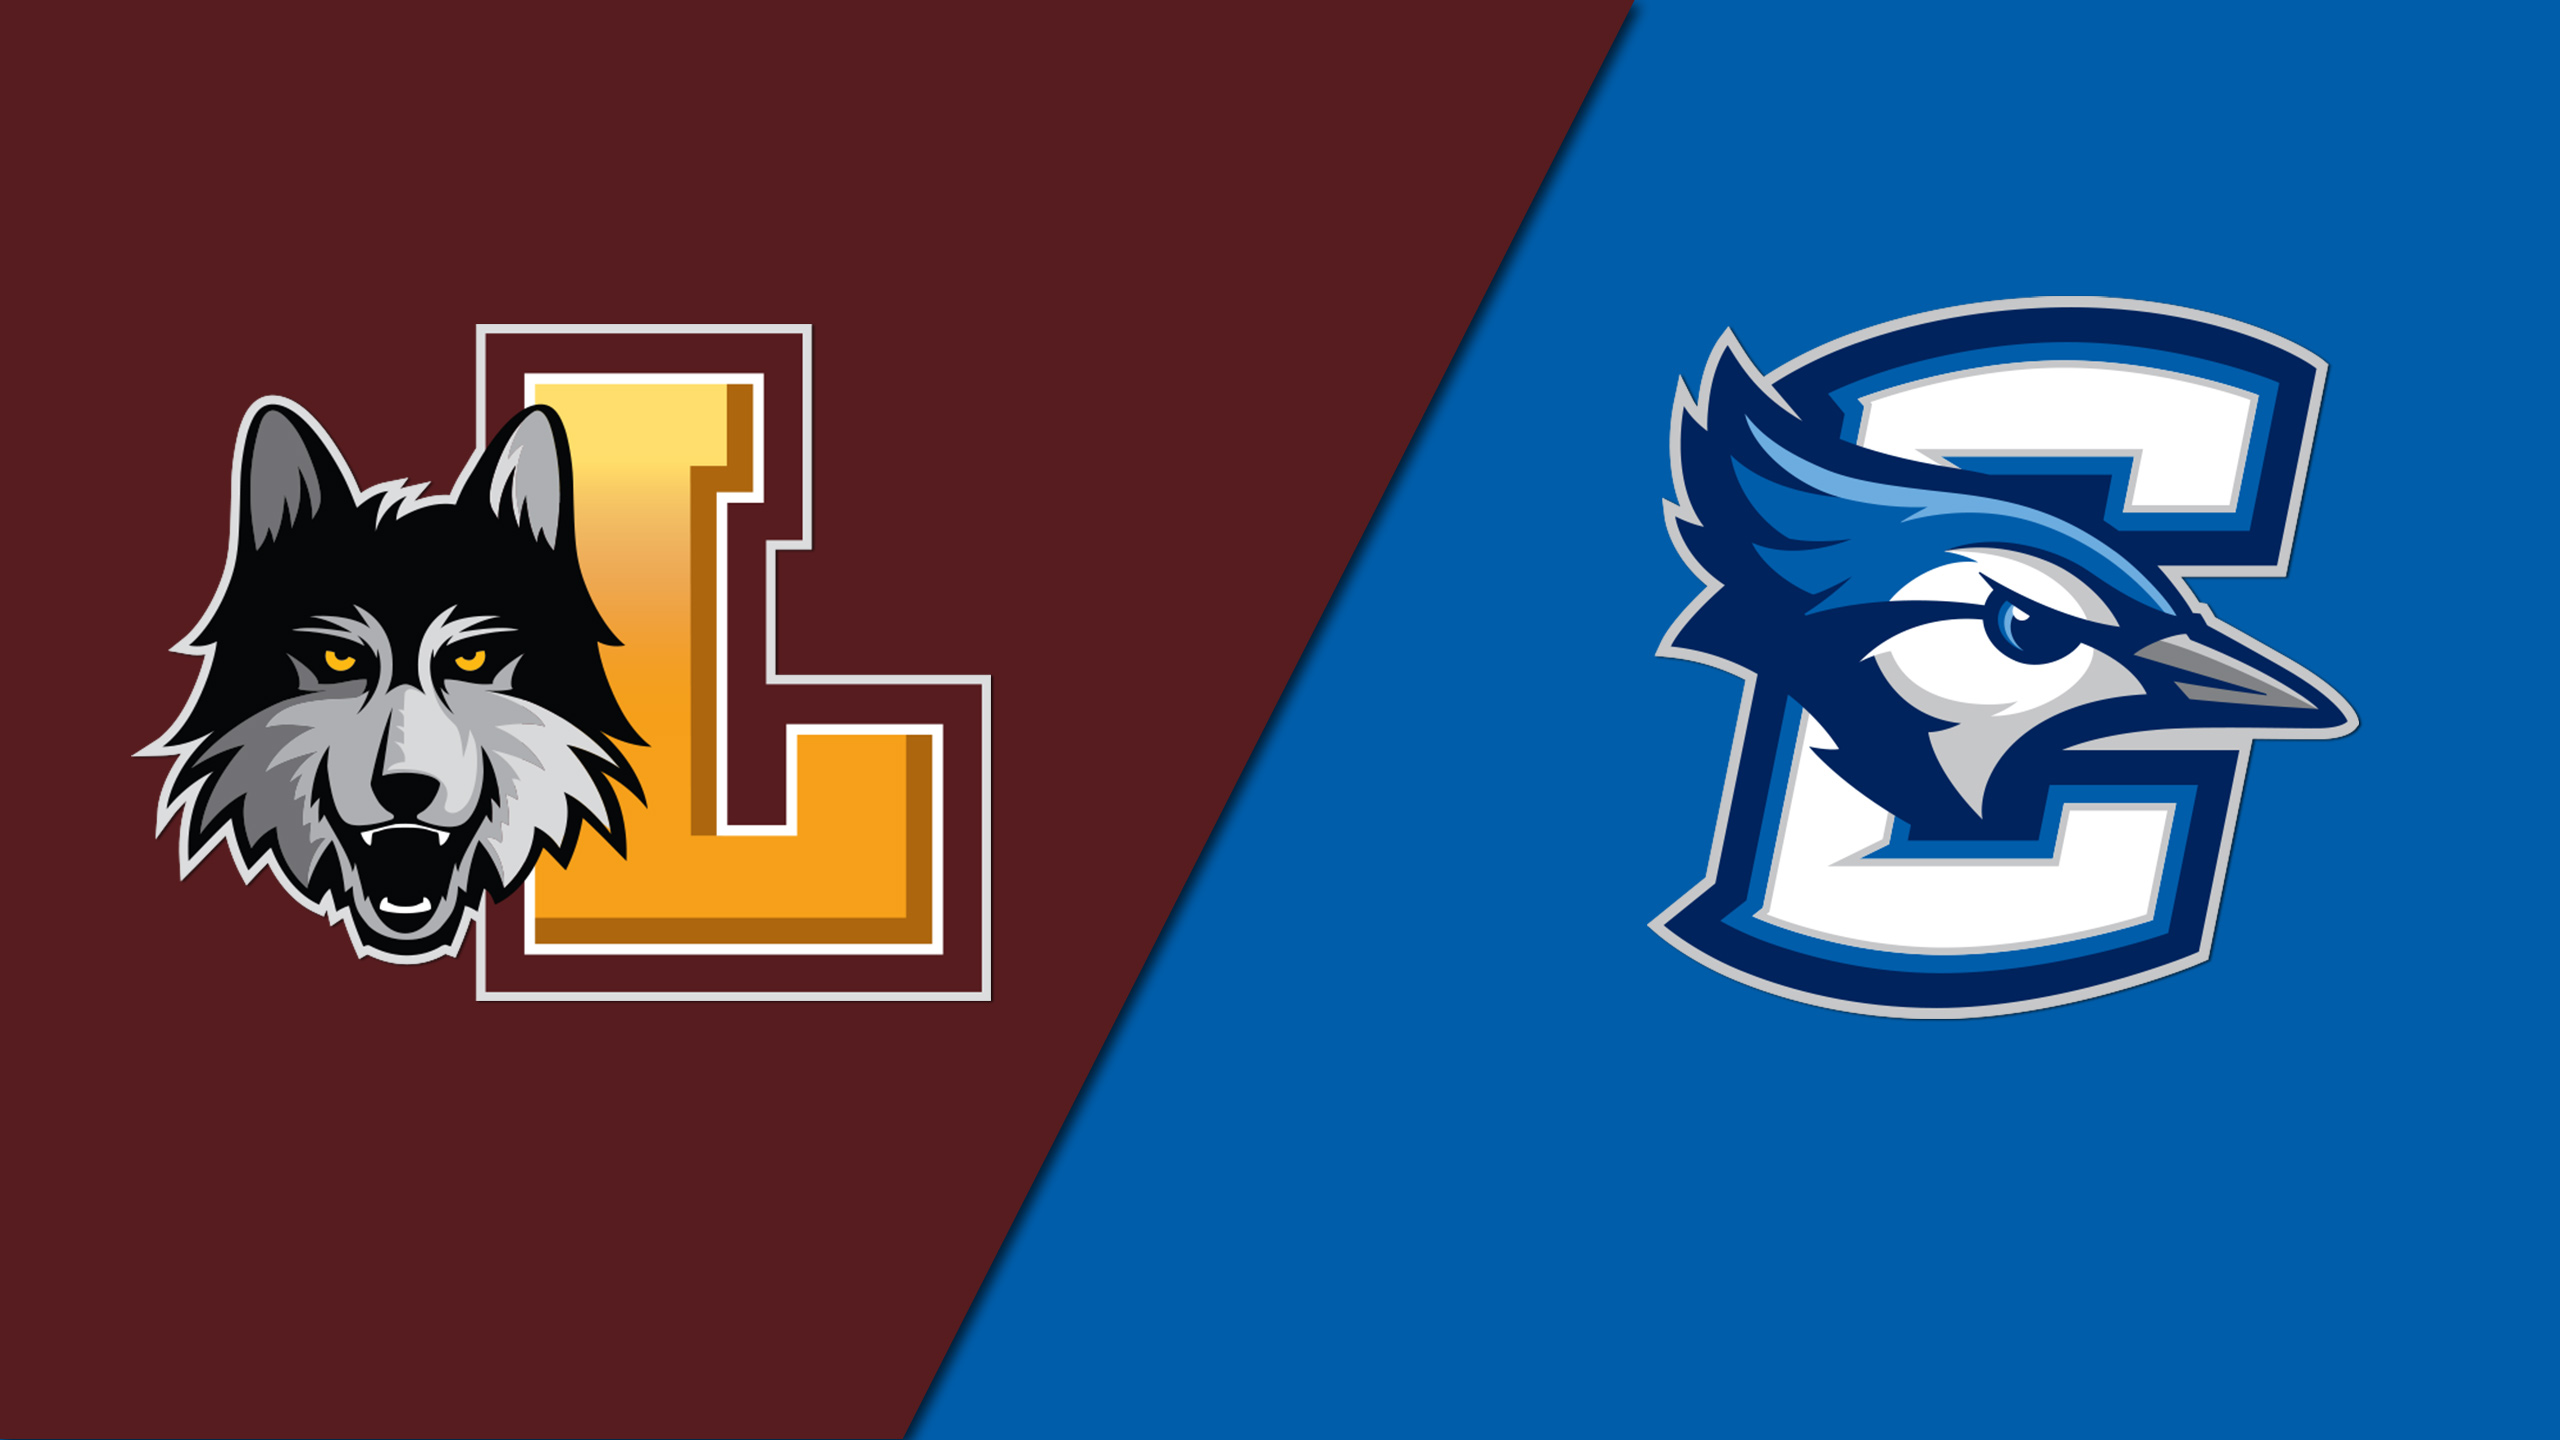 #7 Loyola Chicago vs. #2 Creighton (First Round) (NIT)